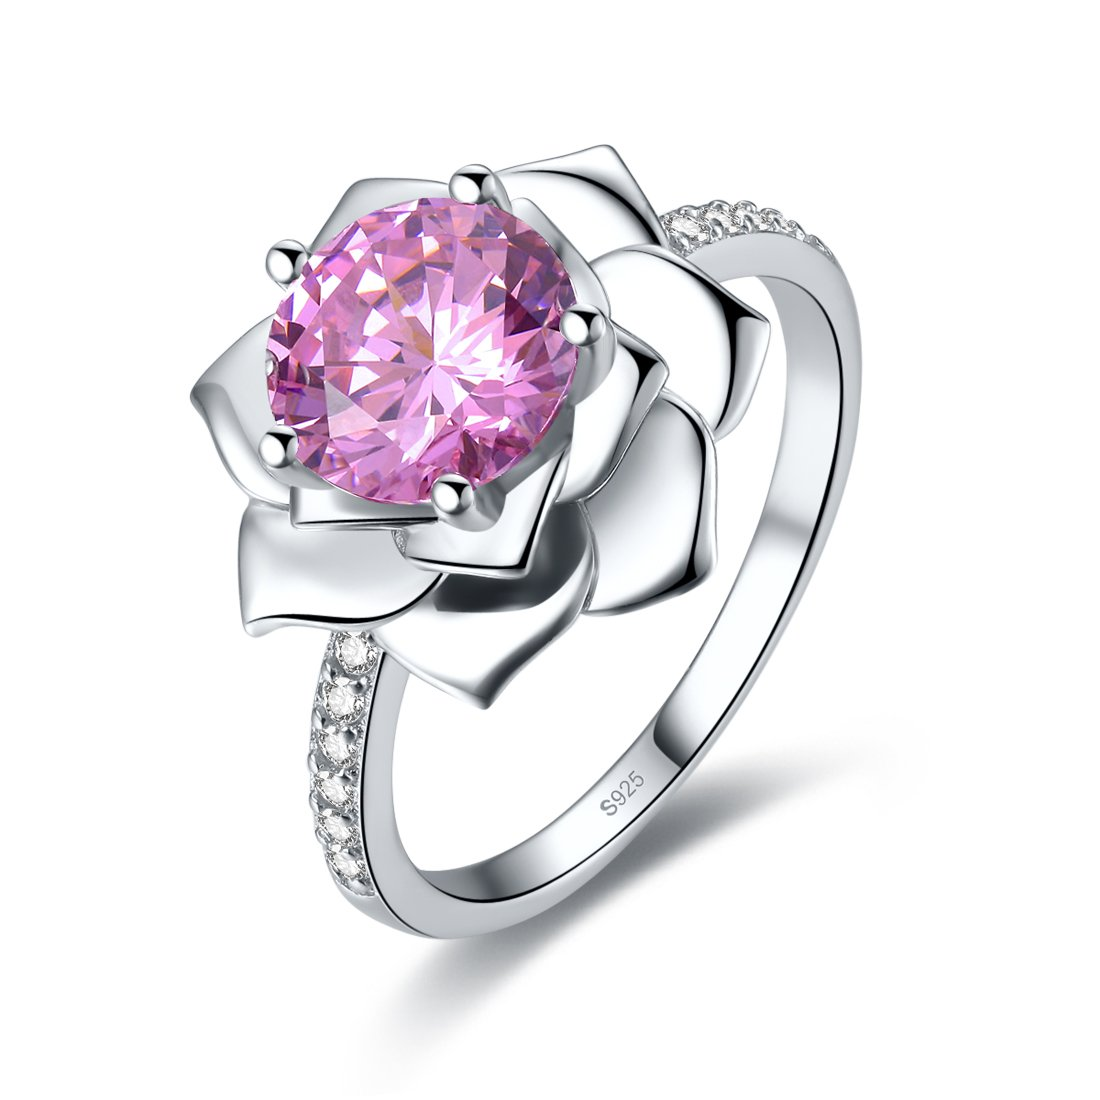 Merthus Womens 925 Sterling Silver Created Pink Topaz Water Lily Promise Engagement Ring